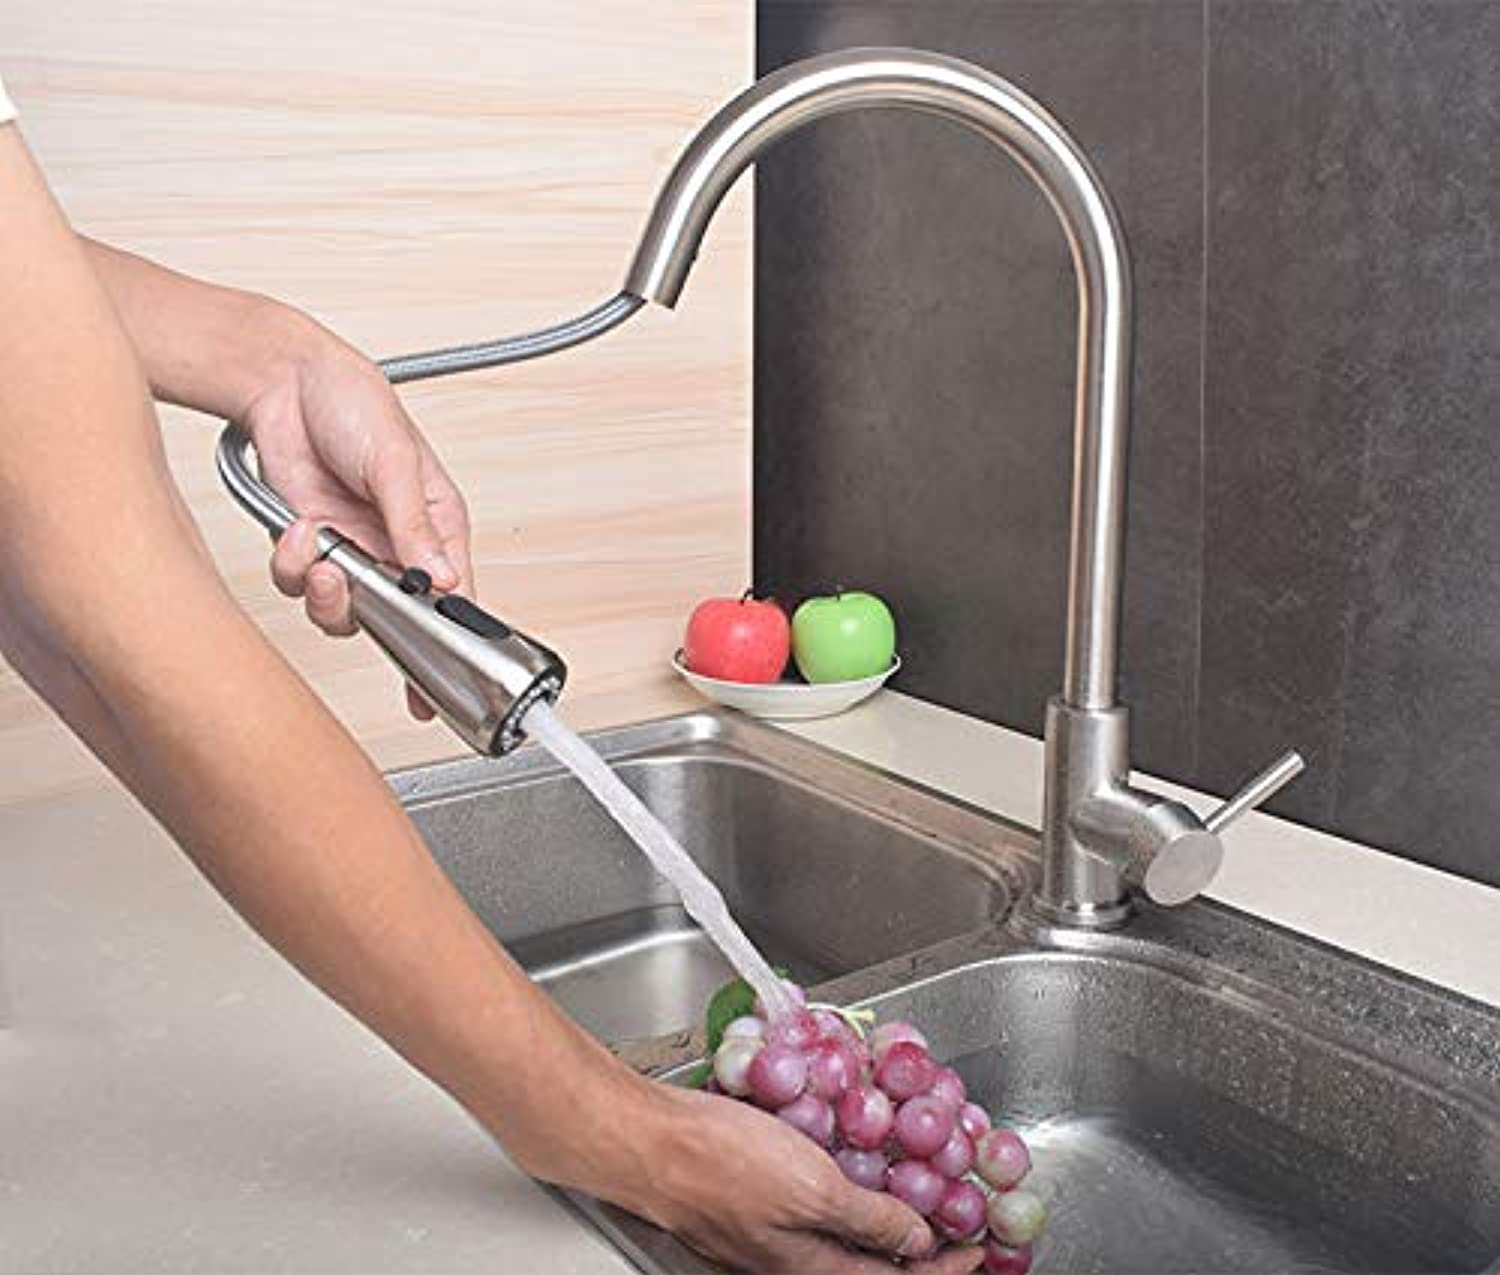 JWLT faucets Germany universal lead-free 304 stainless steel pull-out kitchen faucet wire drawing hot and cold washing vegetable pots head shower,B pull the faucet, one key to stop the water supply to the inlet pipe.